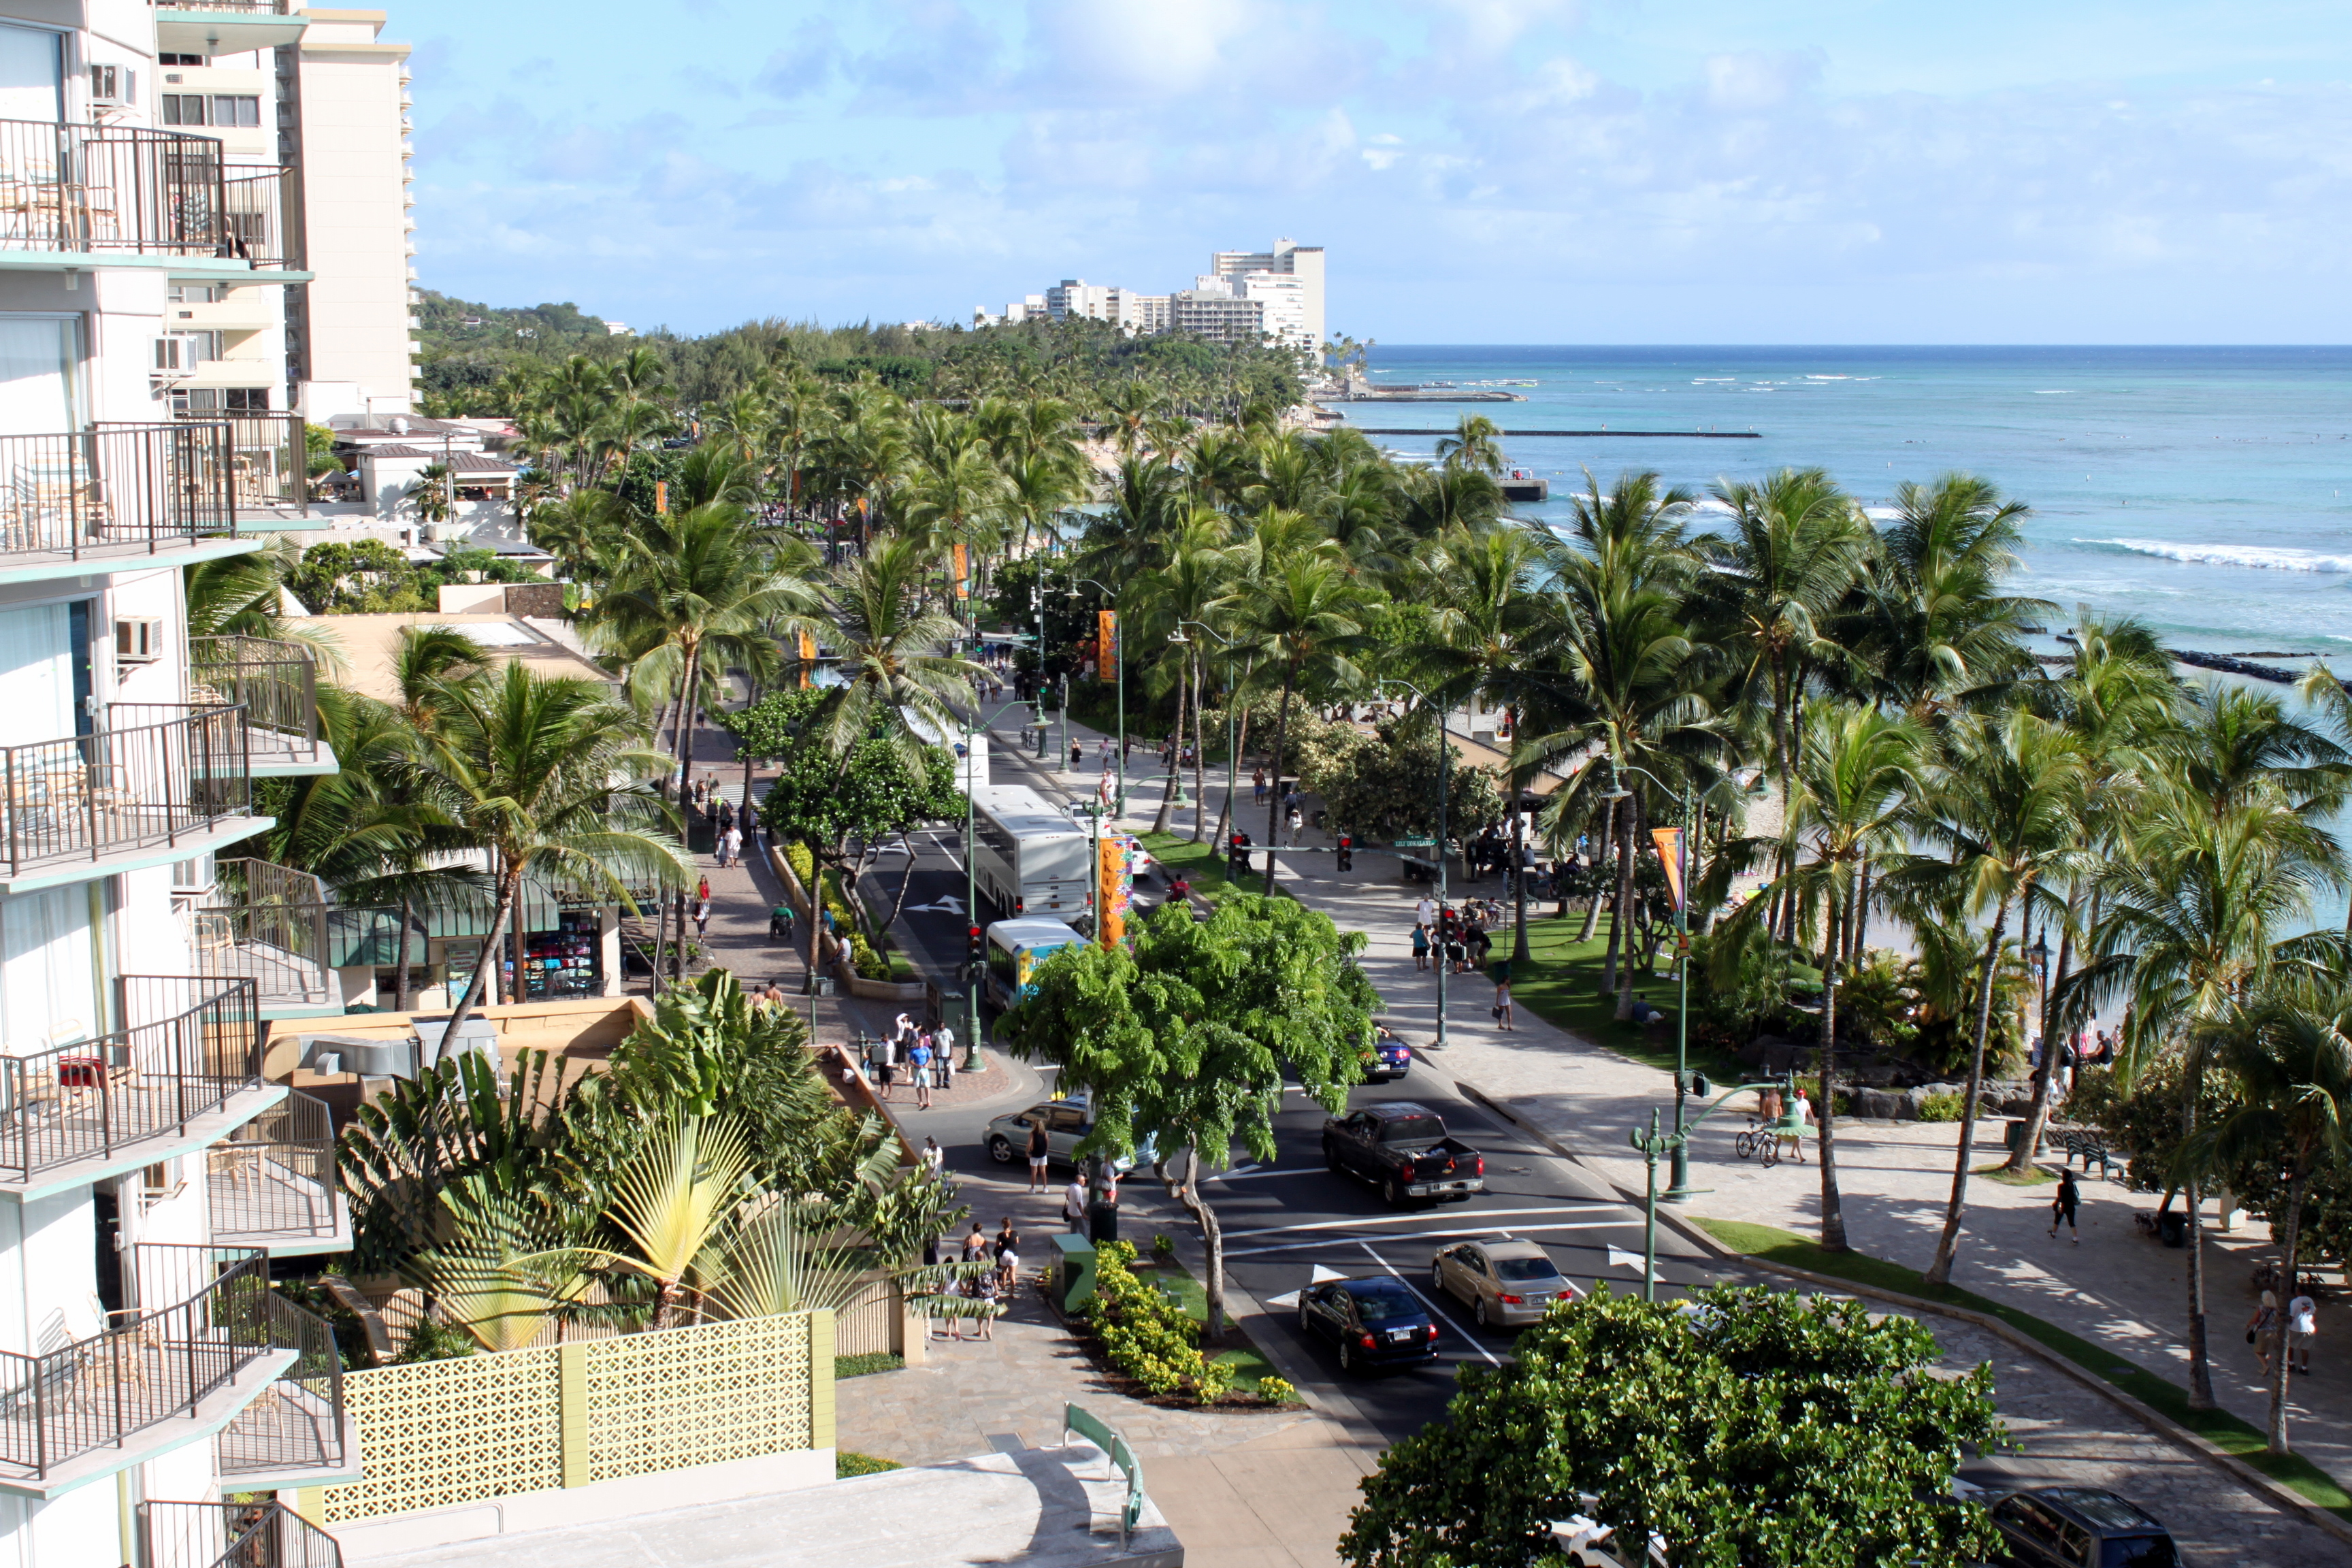 View of Waikiki Beach in Hawaii